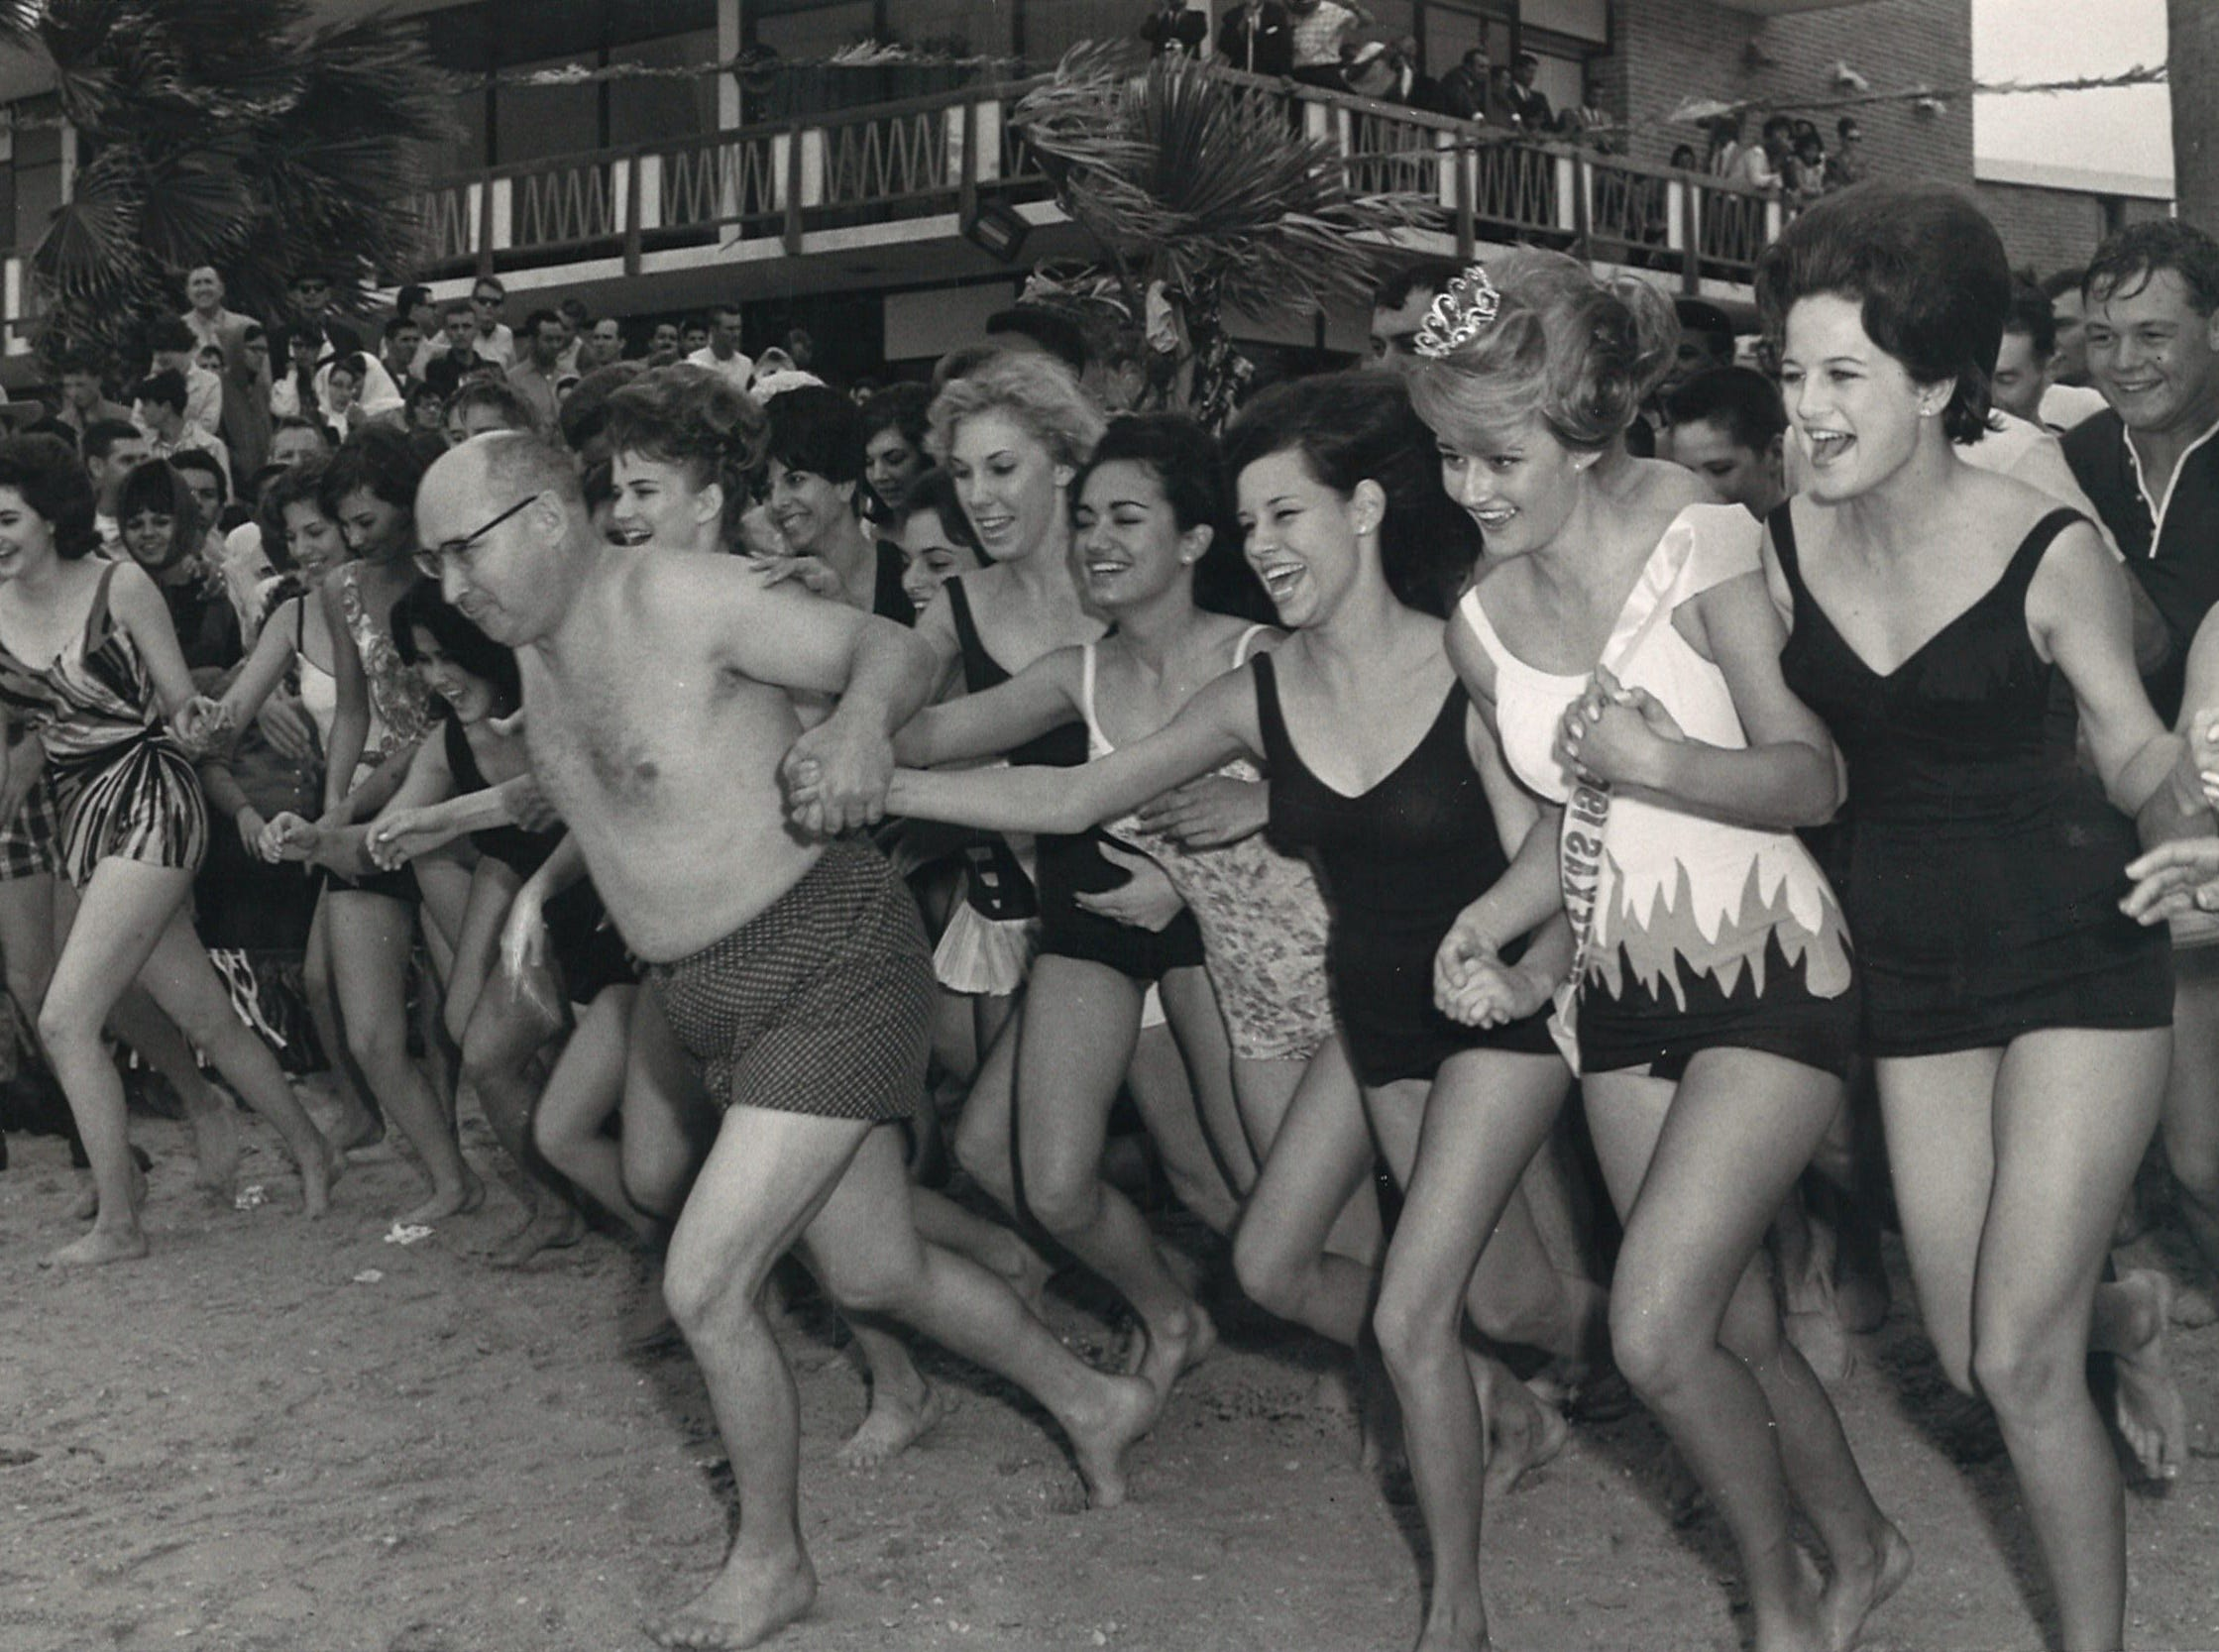 Civitan Club president Jack Blackmon led the charge into the water for the 1965 New Year's Day swim on North Beach.